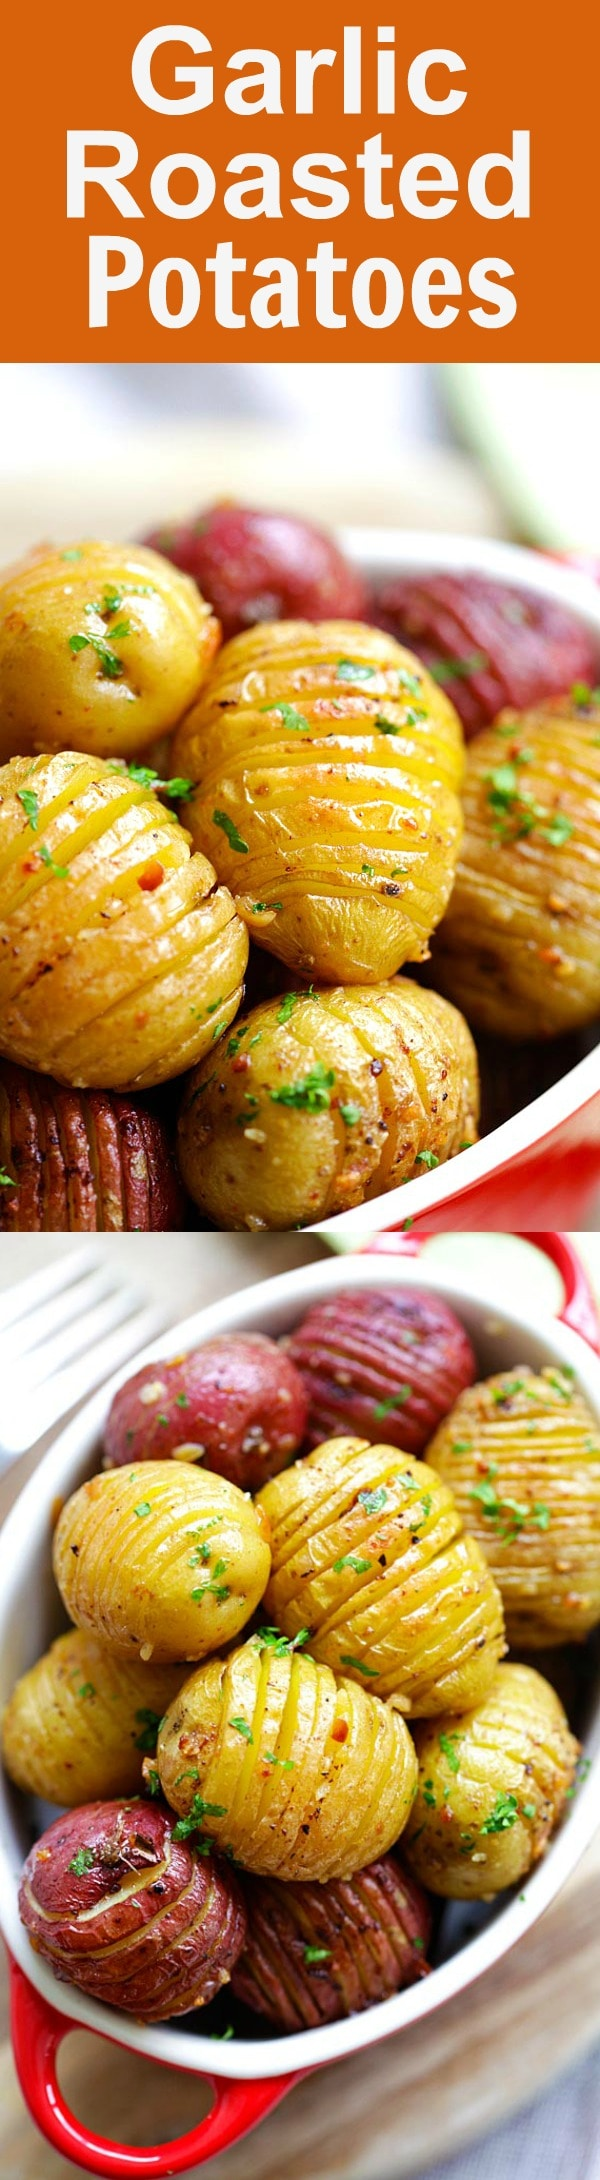 Garlic Roasted Potatoes - quick, easy, the best roasted potatoes with garlic, butter and olive oil. This is one of the best potato recipes in oven | rasamalaysia.com